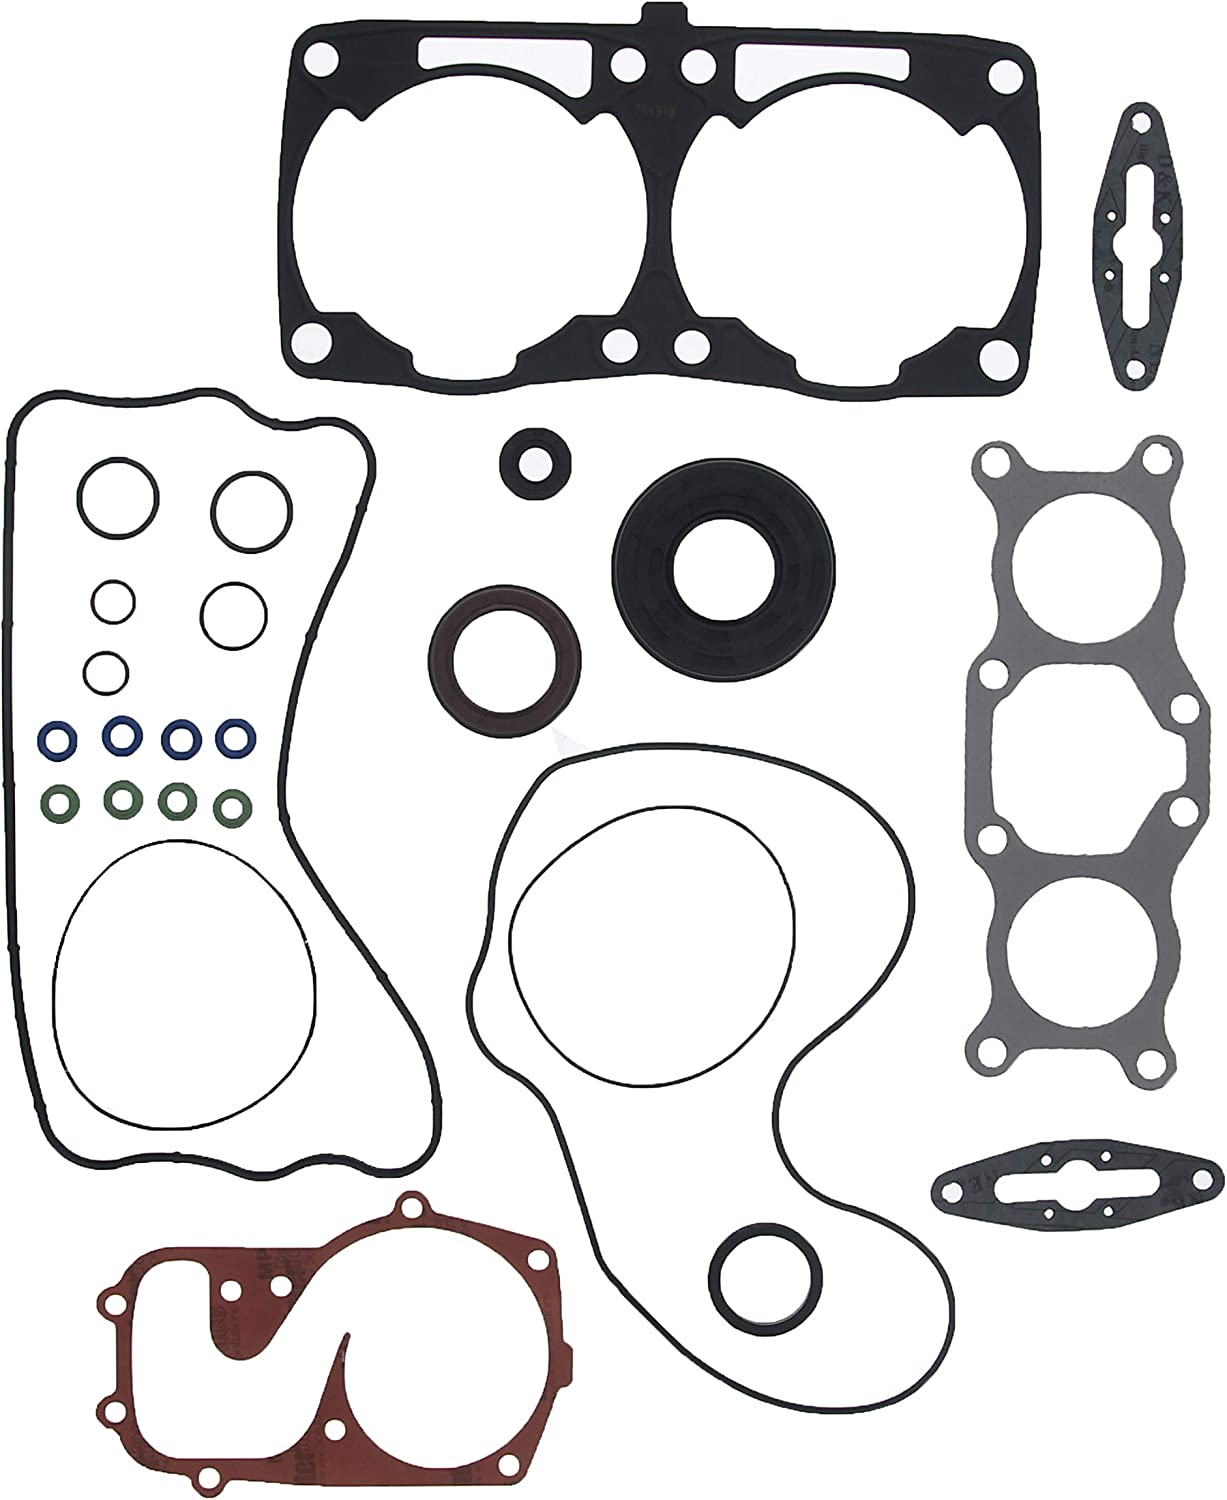 Complete Gasket Kit fits Polaris Rush 800 2011 2012 Snowmobile by Race-Driven